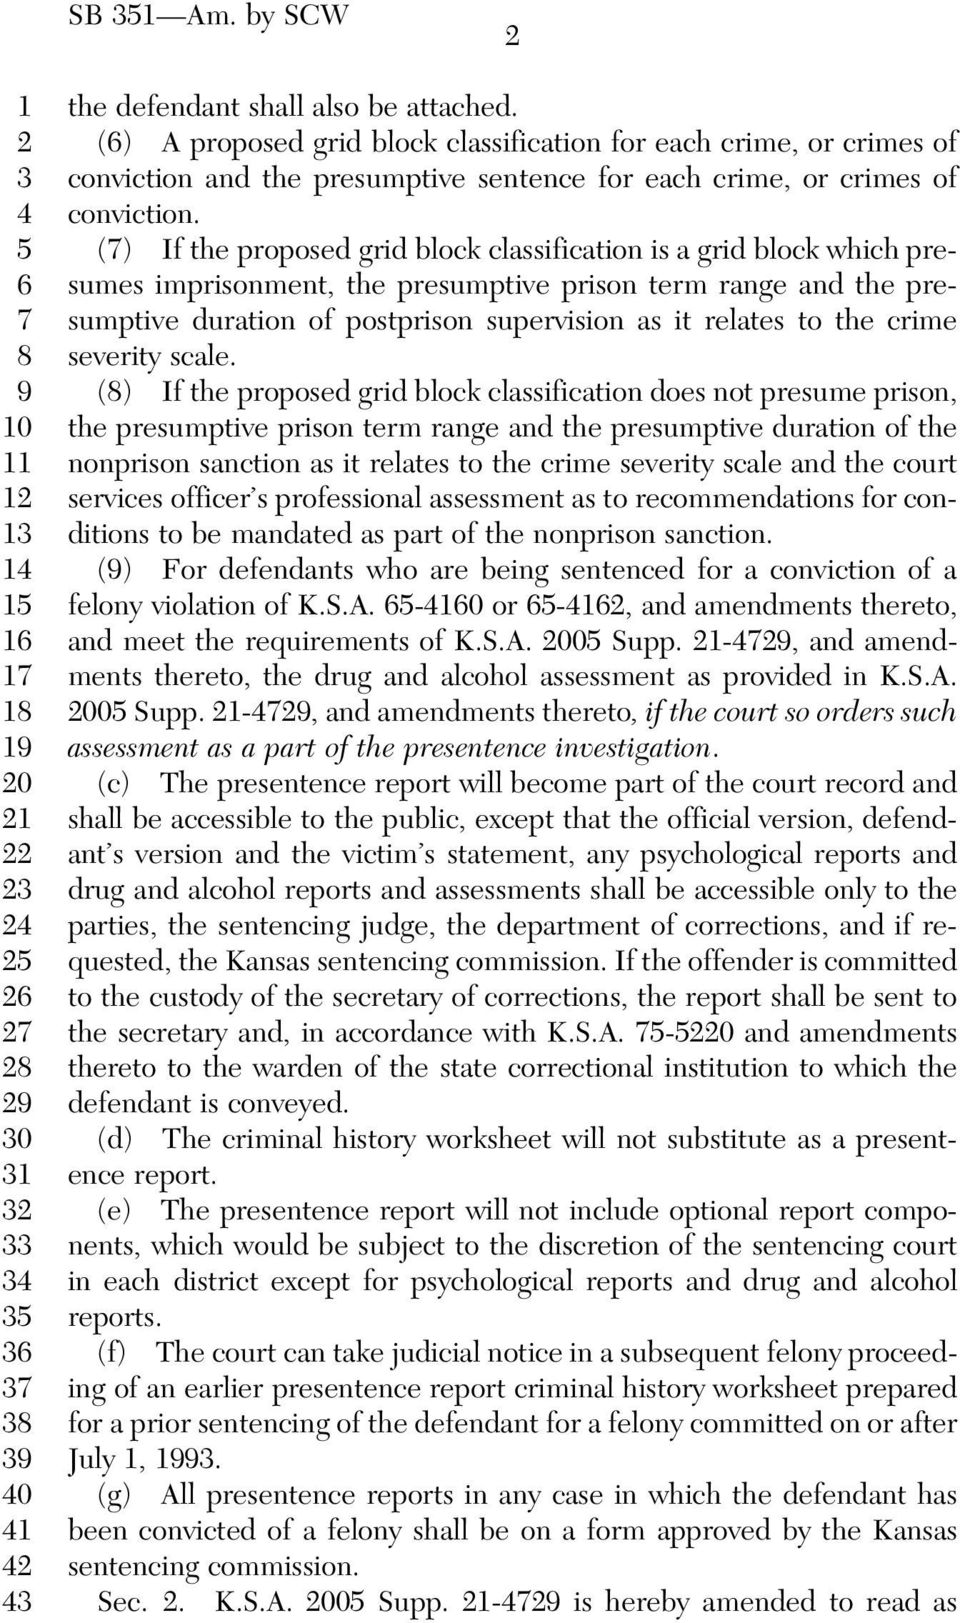 () If the proposed grid block classification is a grid block which presumes imprisonment, the presumptive prison term range and the presumptive duration of postprison supervision as it relates to the